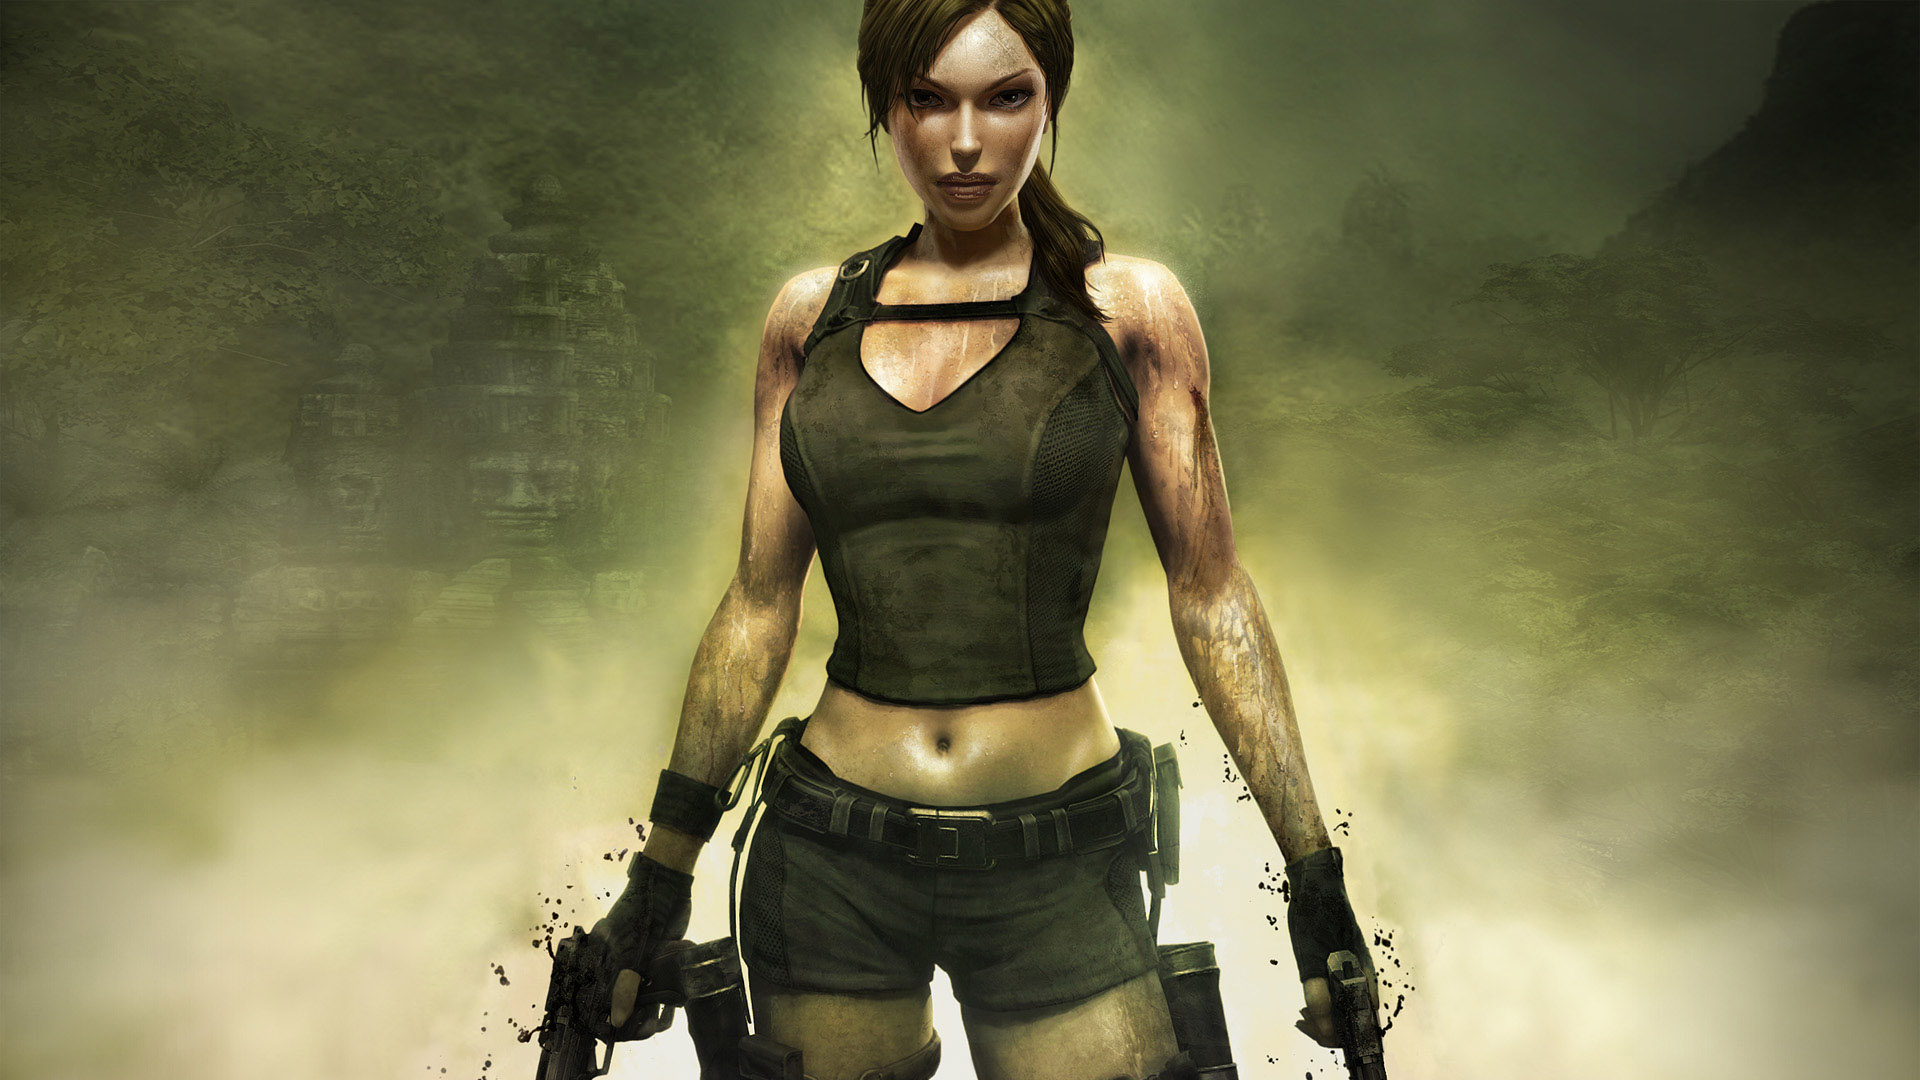 Tomb raider download size